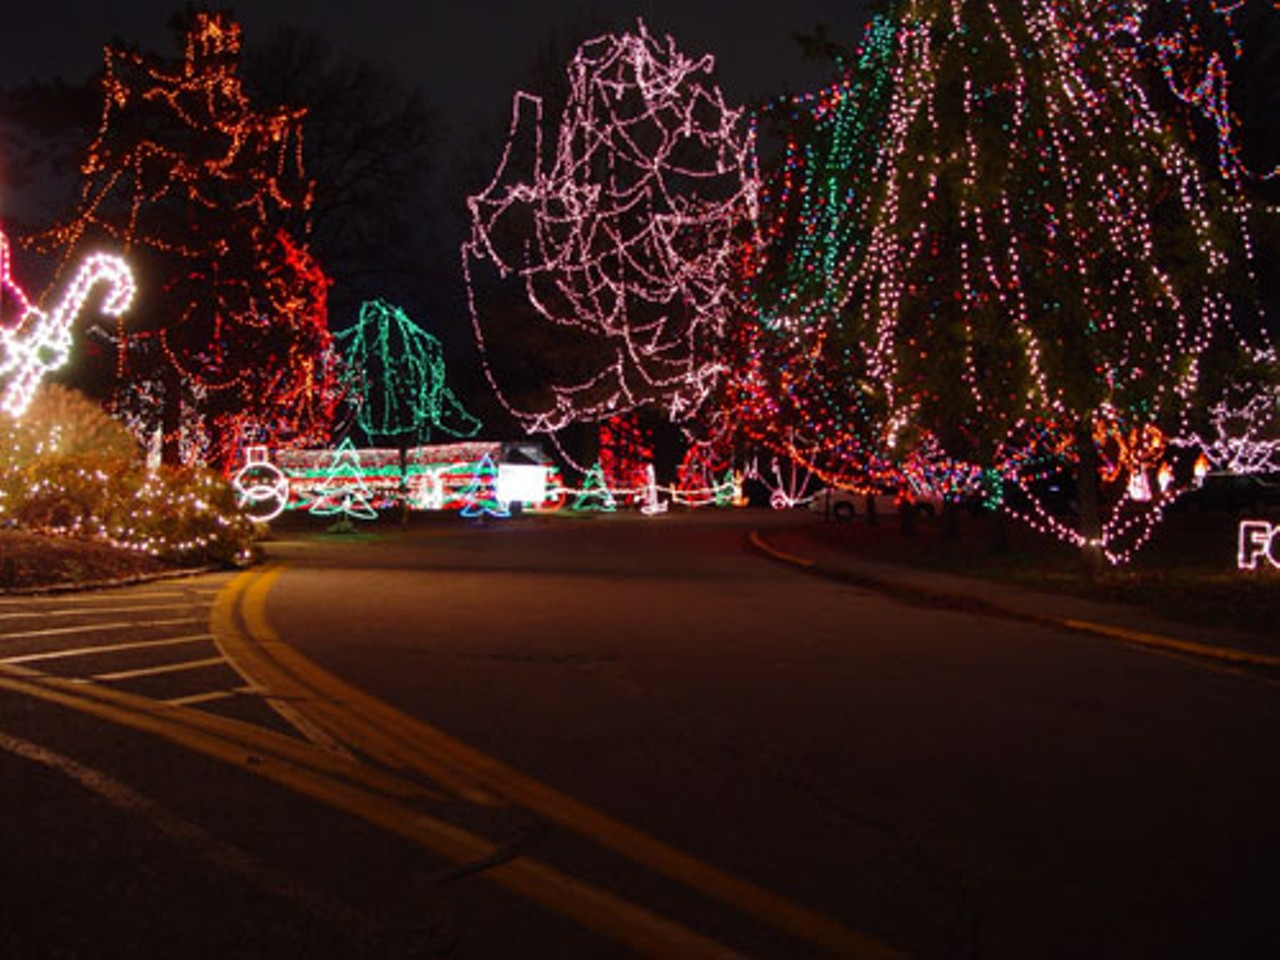 Tilles Park Christmas Lights 2020 Hours Holiday Lights, the Easy Way | Night & Day | St. Louis | St. Louis